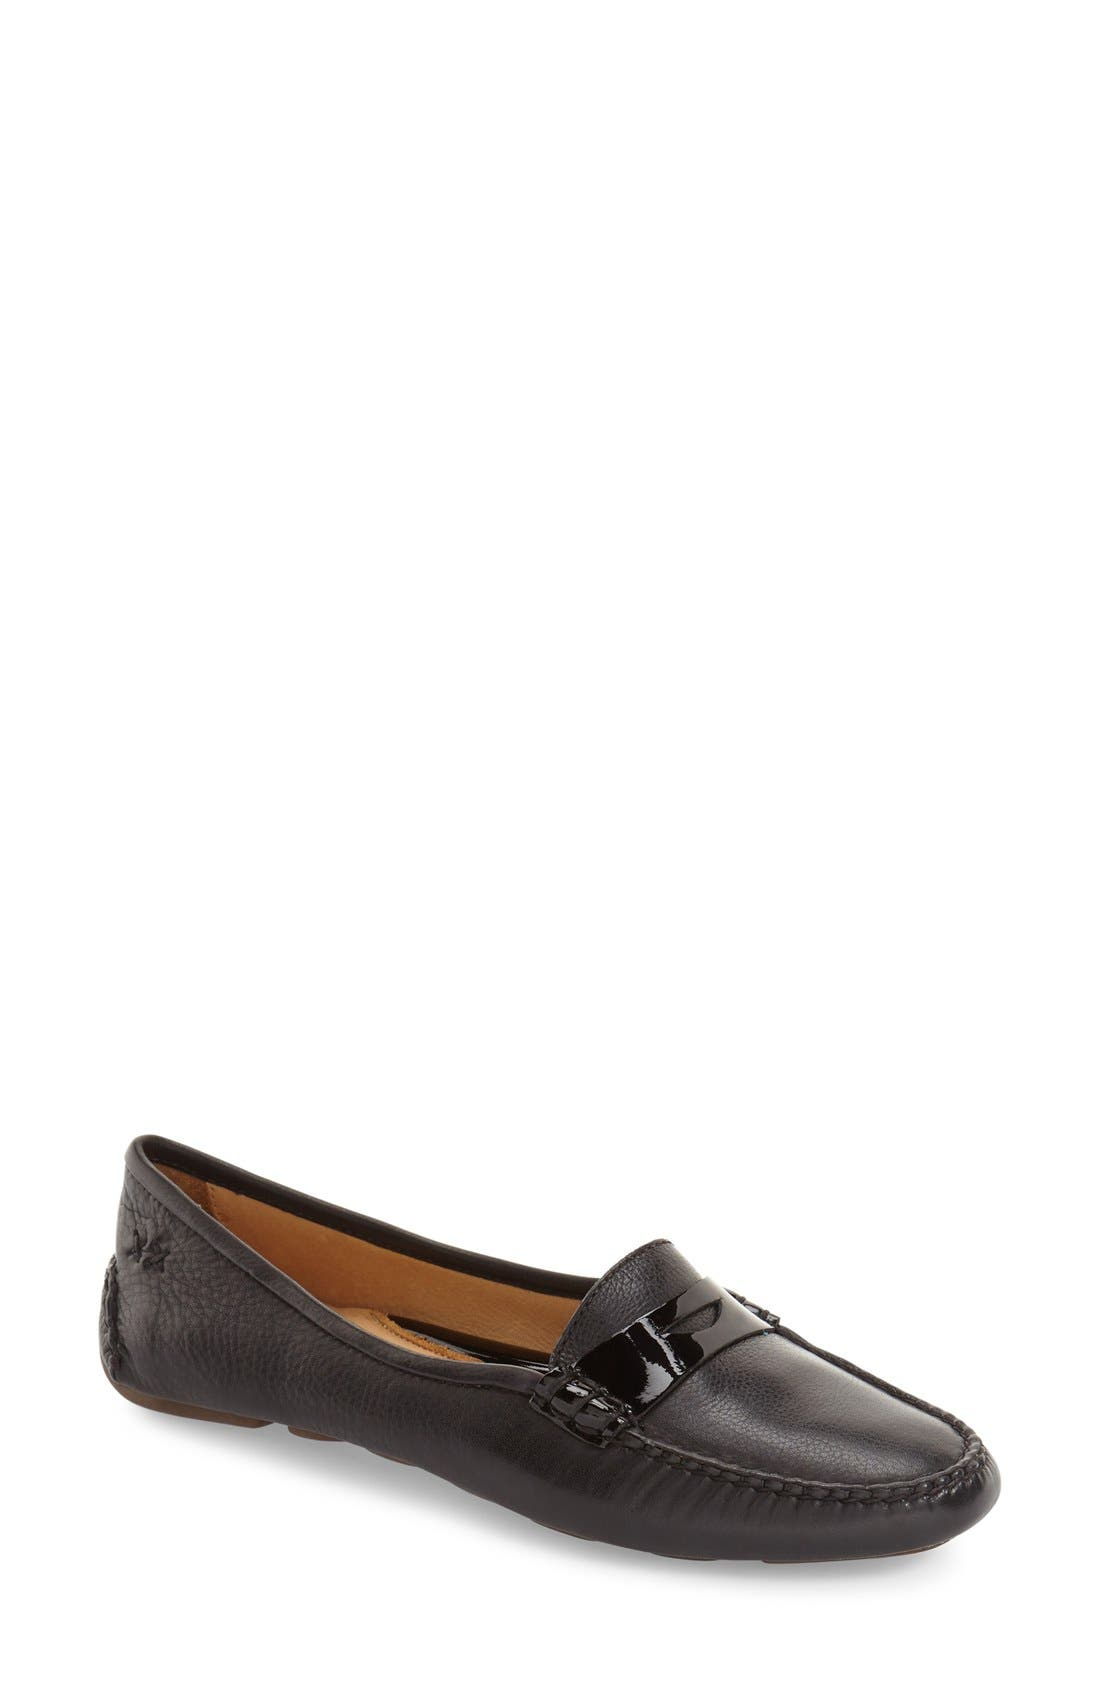 Alternate Image 1 Selected - patricia green 'Bristol' Penny Loafer (Women)